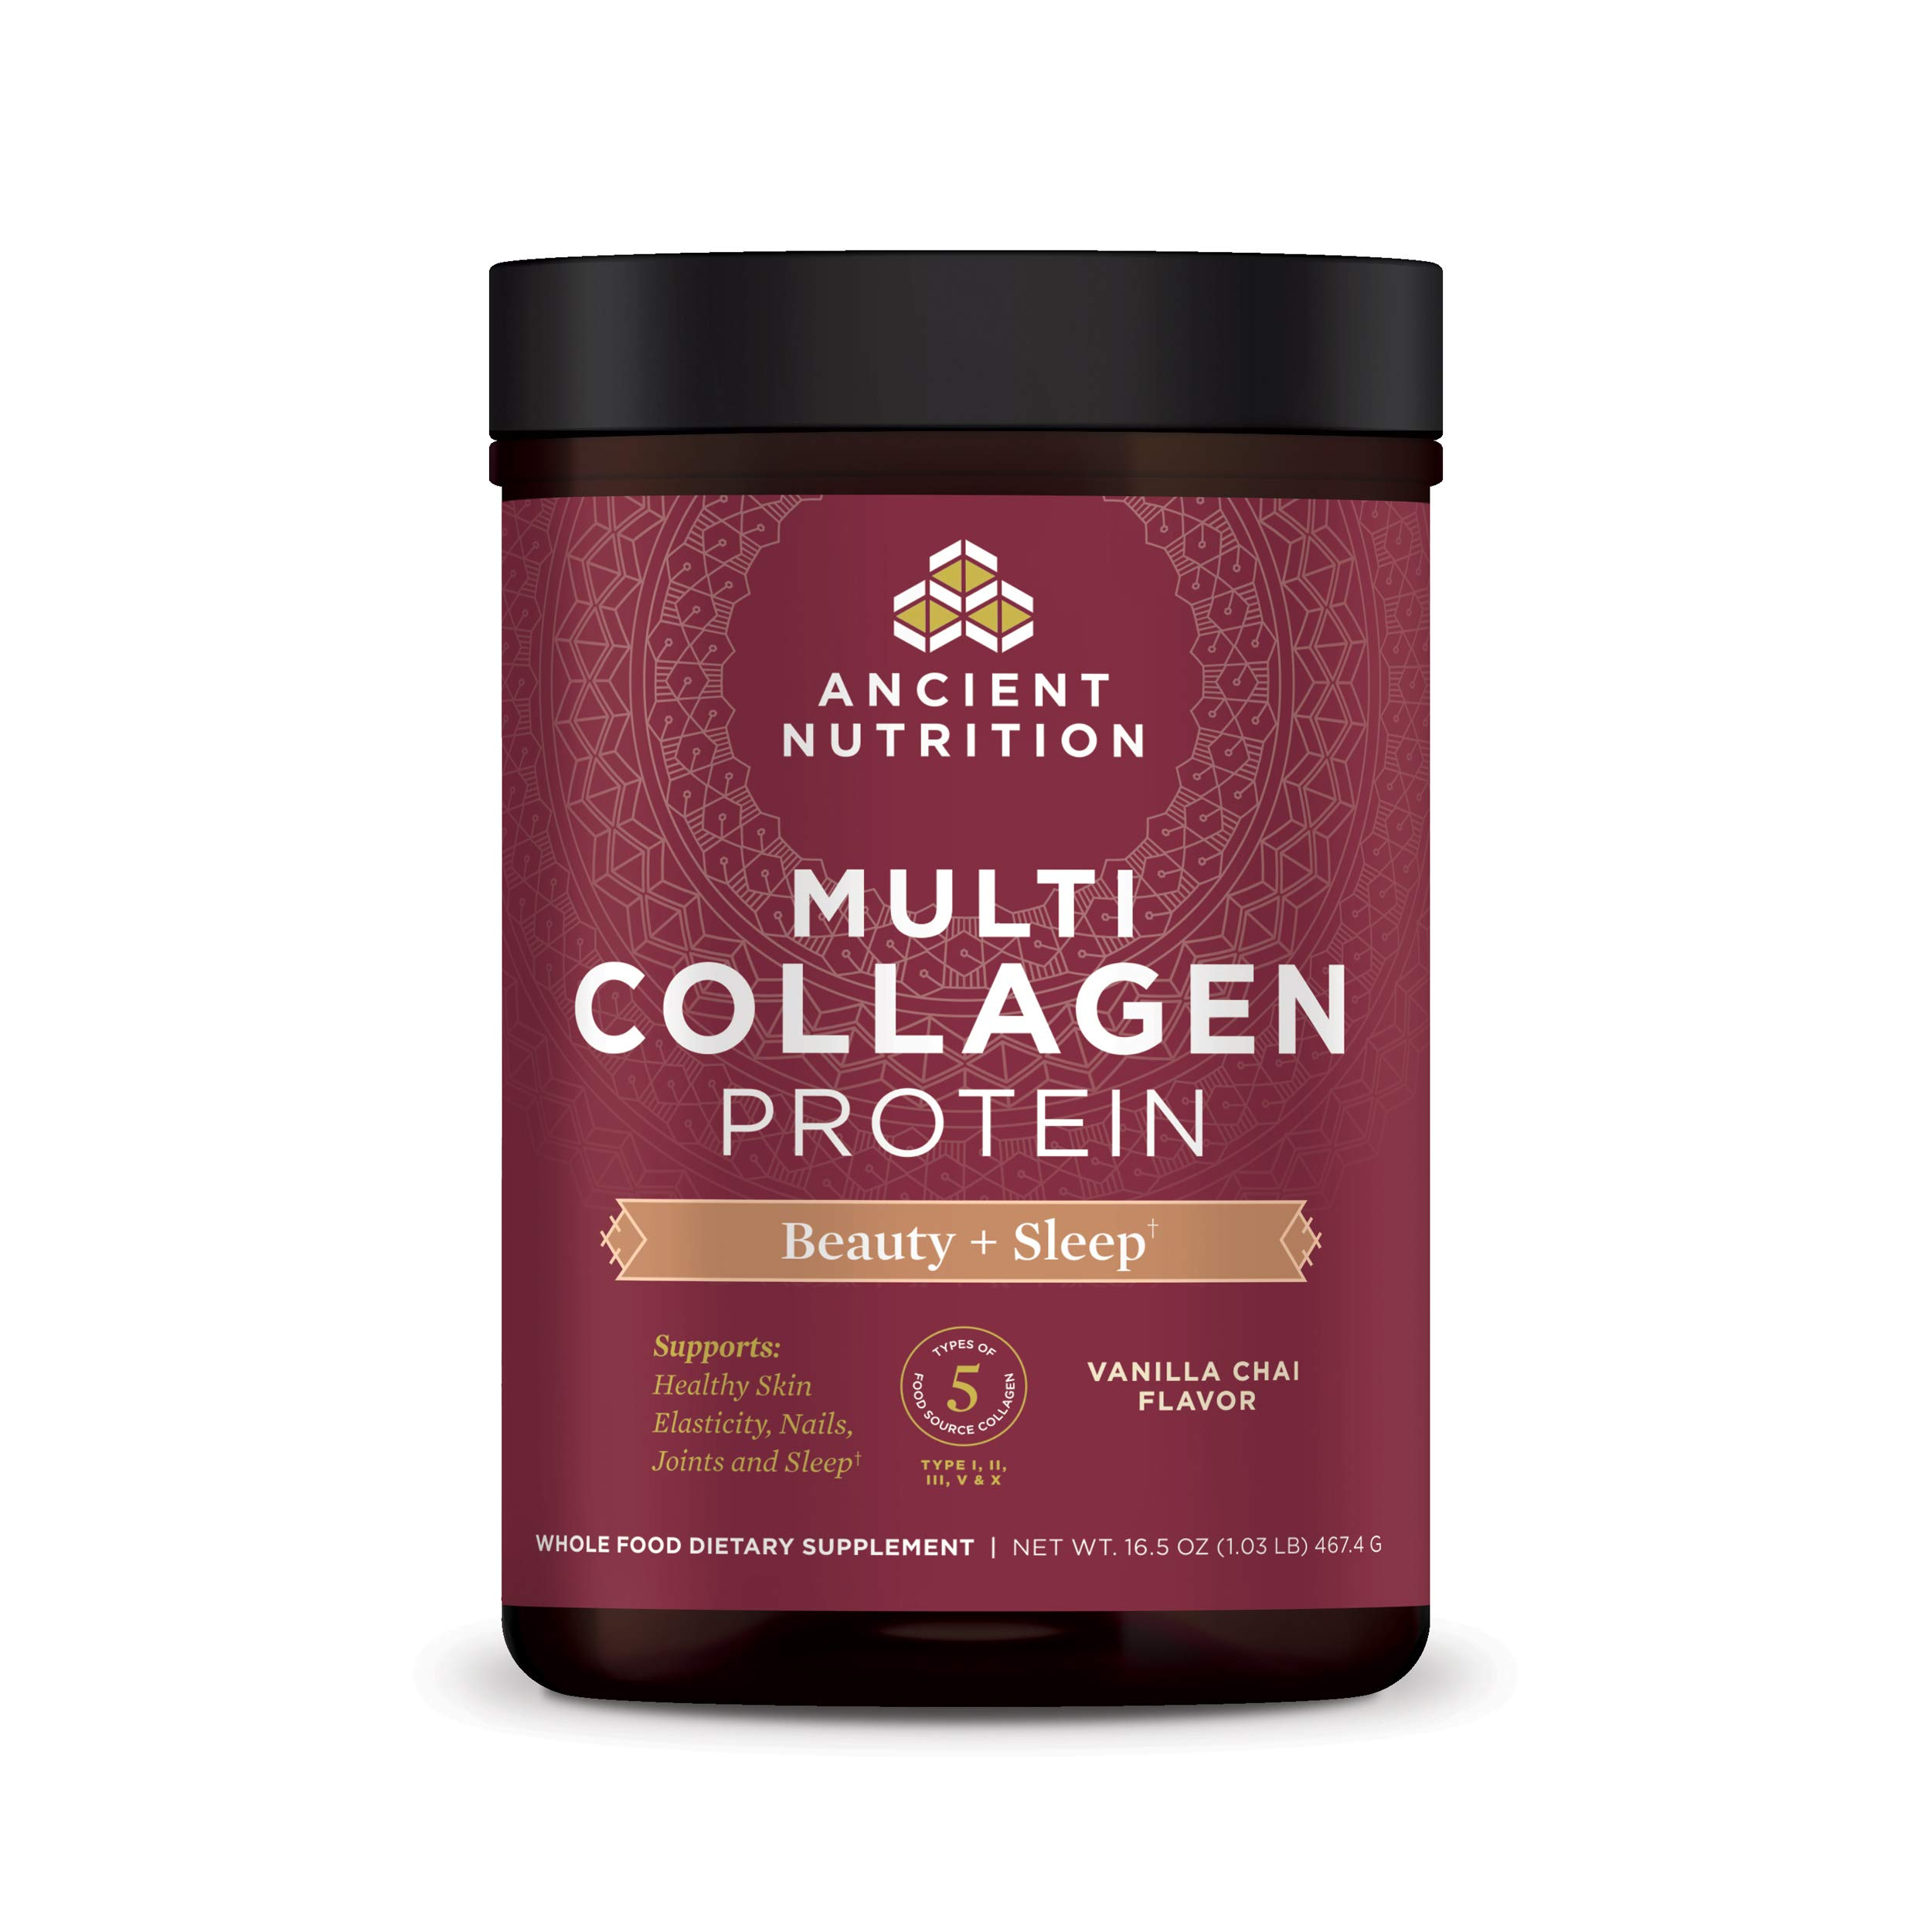 Ancient Nutrition Multi Collagen Protein Powder Beauty + Sleep, Vanilla Chai, Formulated by Dr. Josh Axe, Collagen Supplement Promotes Restful Sleep & Supports Hair, Skin, Nails, Joints & Gut, 16.5oz